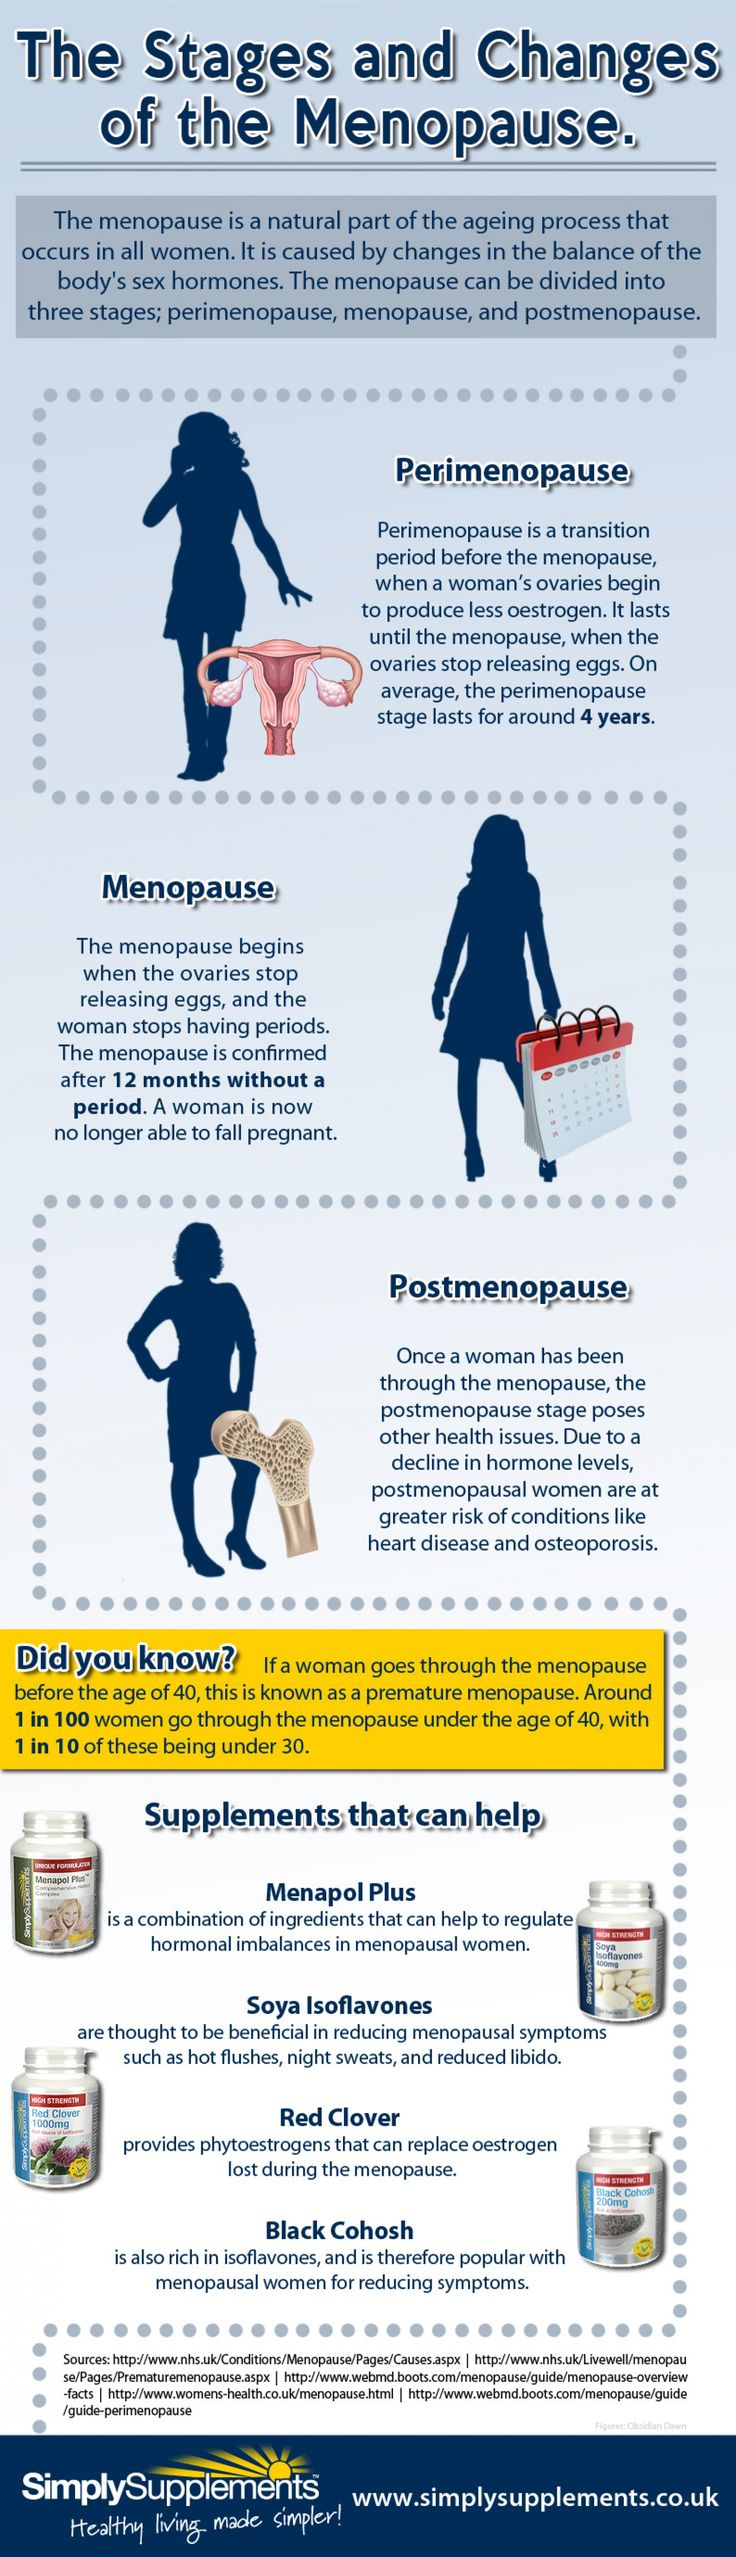 The Stages And Changes Of Menopause